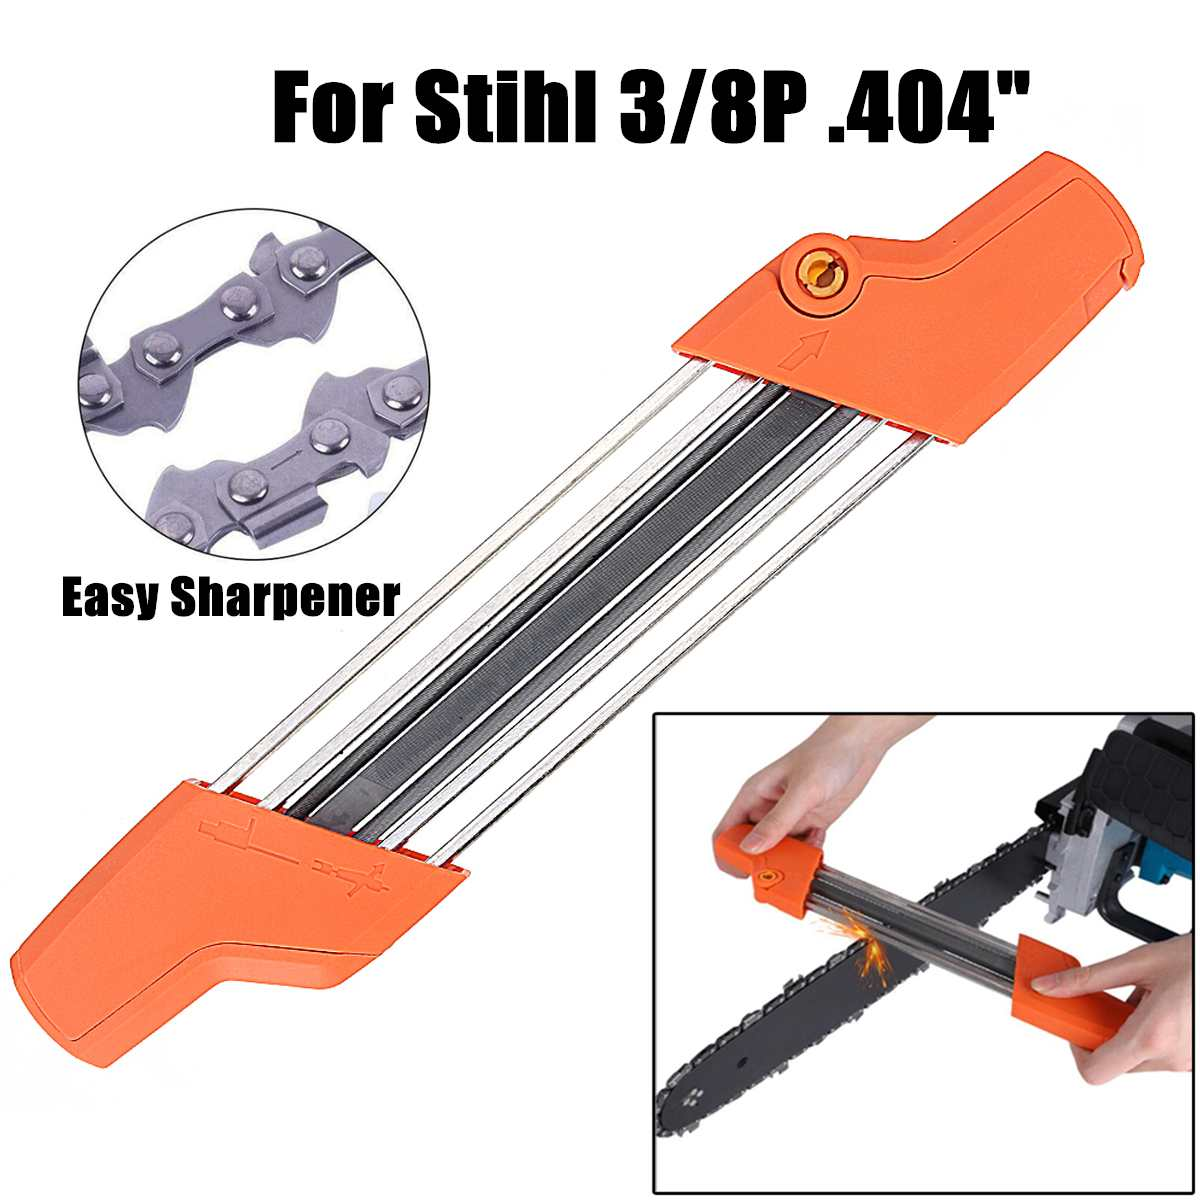 2 IN 1 Easy Chainsaw Chain File Sharpener 5.2mm 13/64 3/8P .404